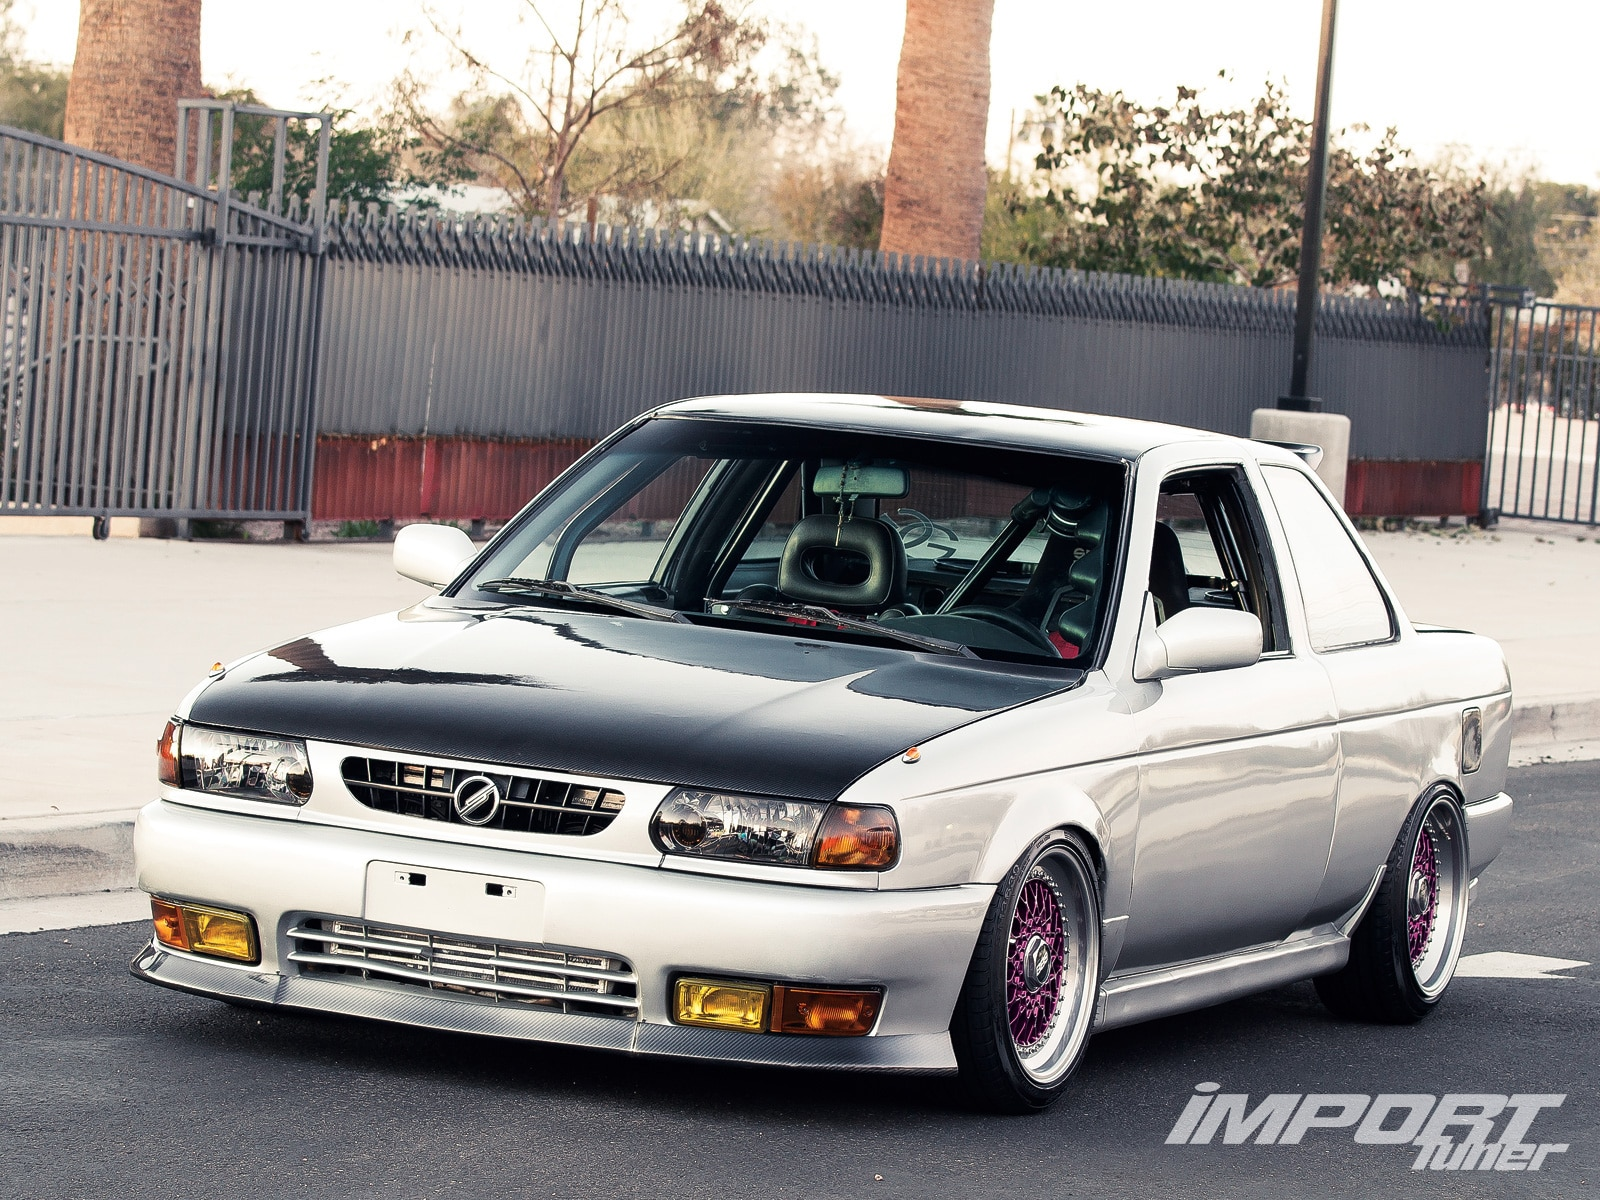 1992 Nissan Sentra Xe Import Tuner Magazine Follow our instagram page @nissansentra_sabreclub. super street